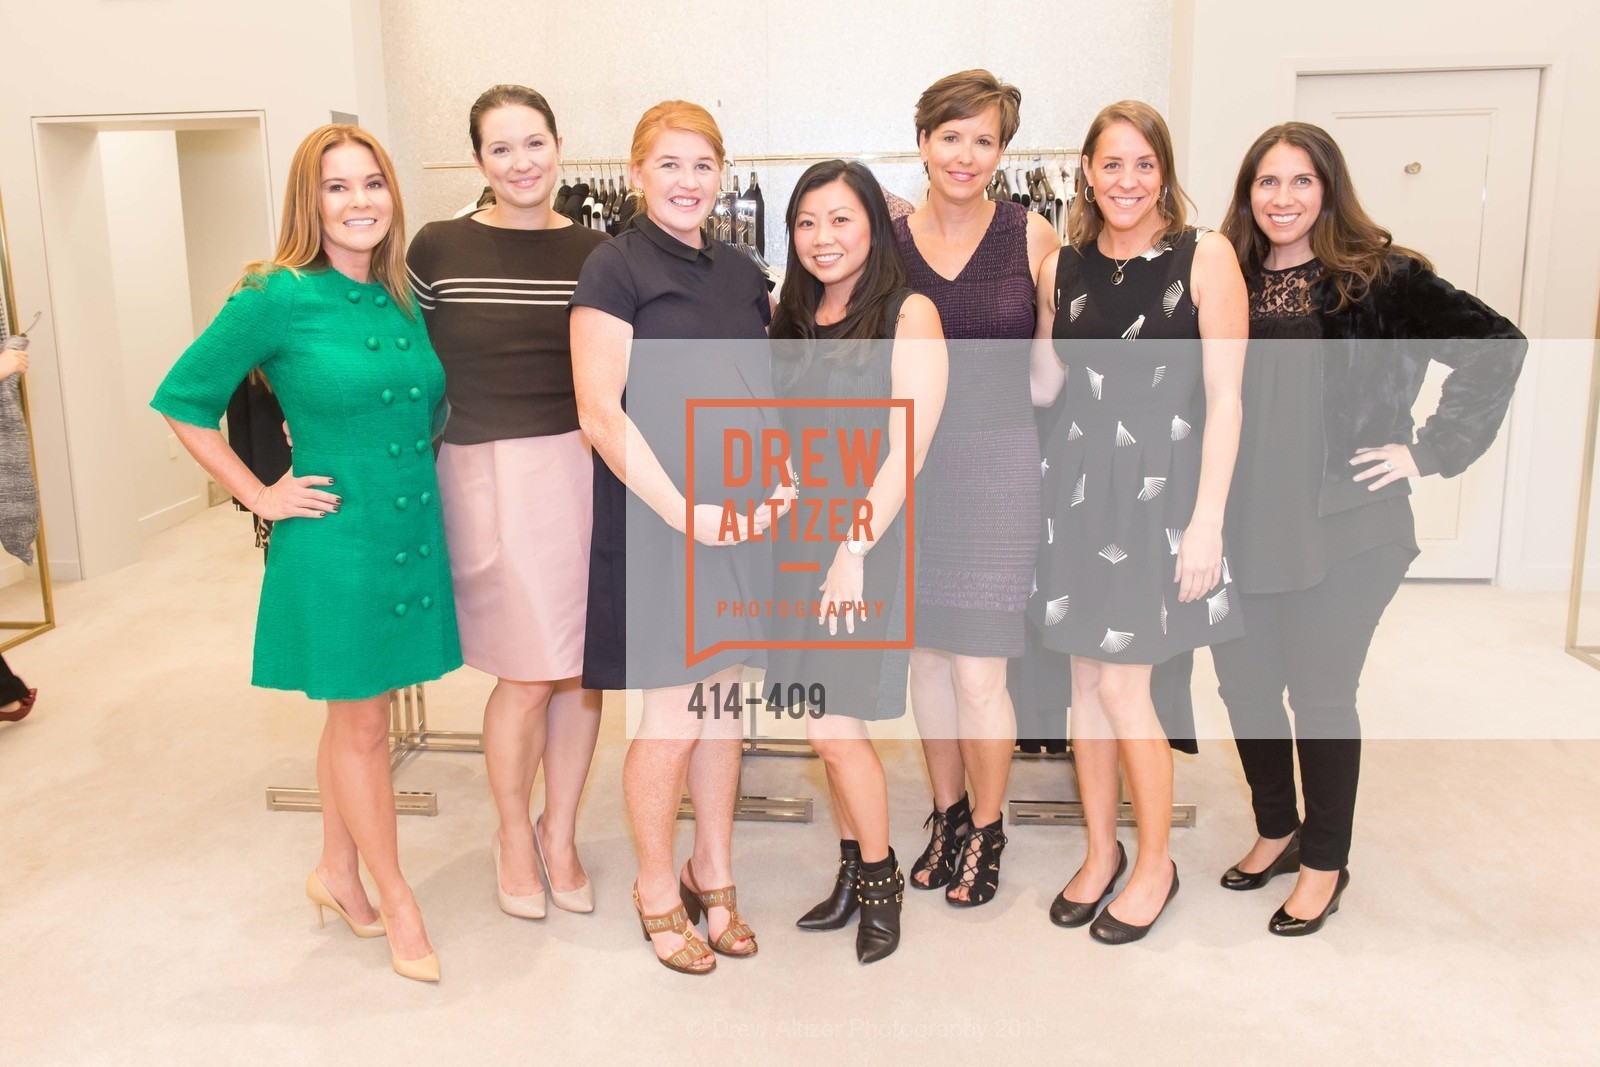 Judy Davies, Genevieve Weeks, Vanessa Welstead, Melissa Koerner, Kate Smith, Erin Reeser, Rachel Styne, St. John in Conversation with Exceptional Women benefiting Raphael House of San Francisco, St. John Boutique, October 22nd, 2015,Drew Altizer, Drew Altizer Photography, full-service agency, private events, San Francisco photographer, photographer california